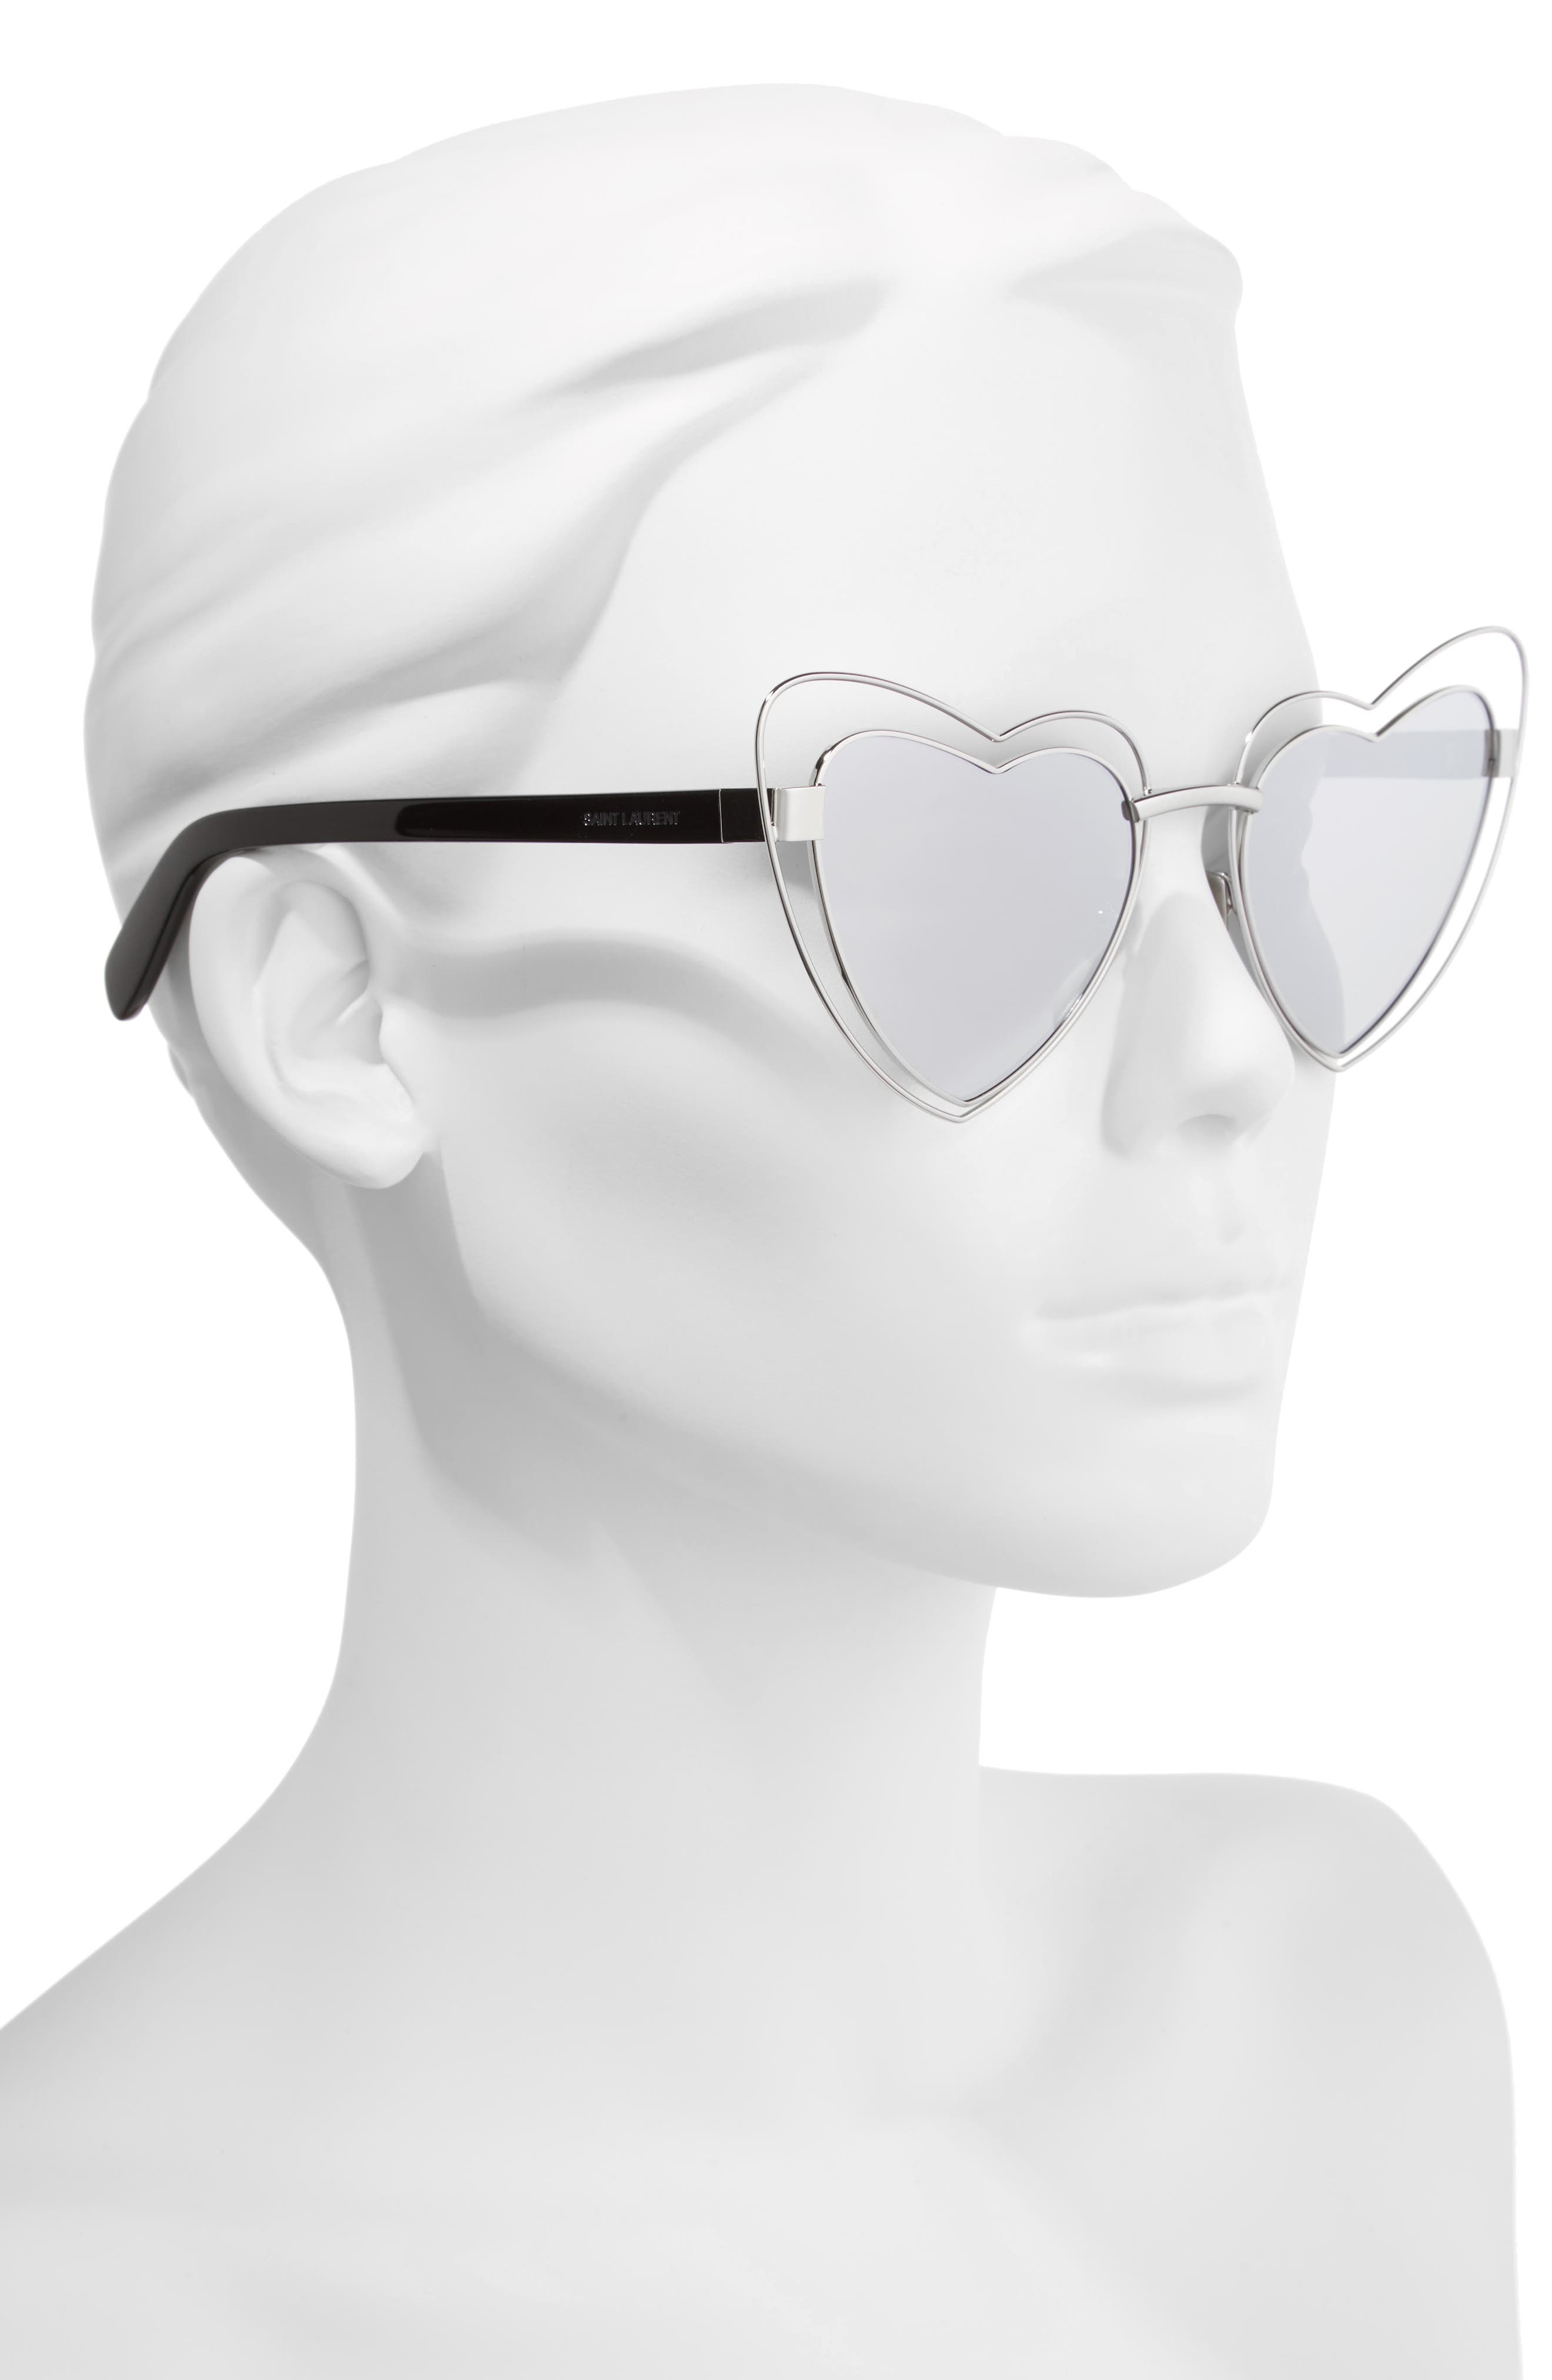 SL197 Loulou 57mm Heart Shaped Sunglasses,                             Alternate thumbnail 2, color,                             Silver